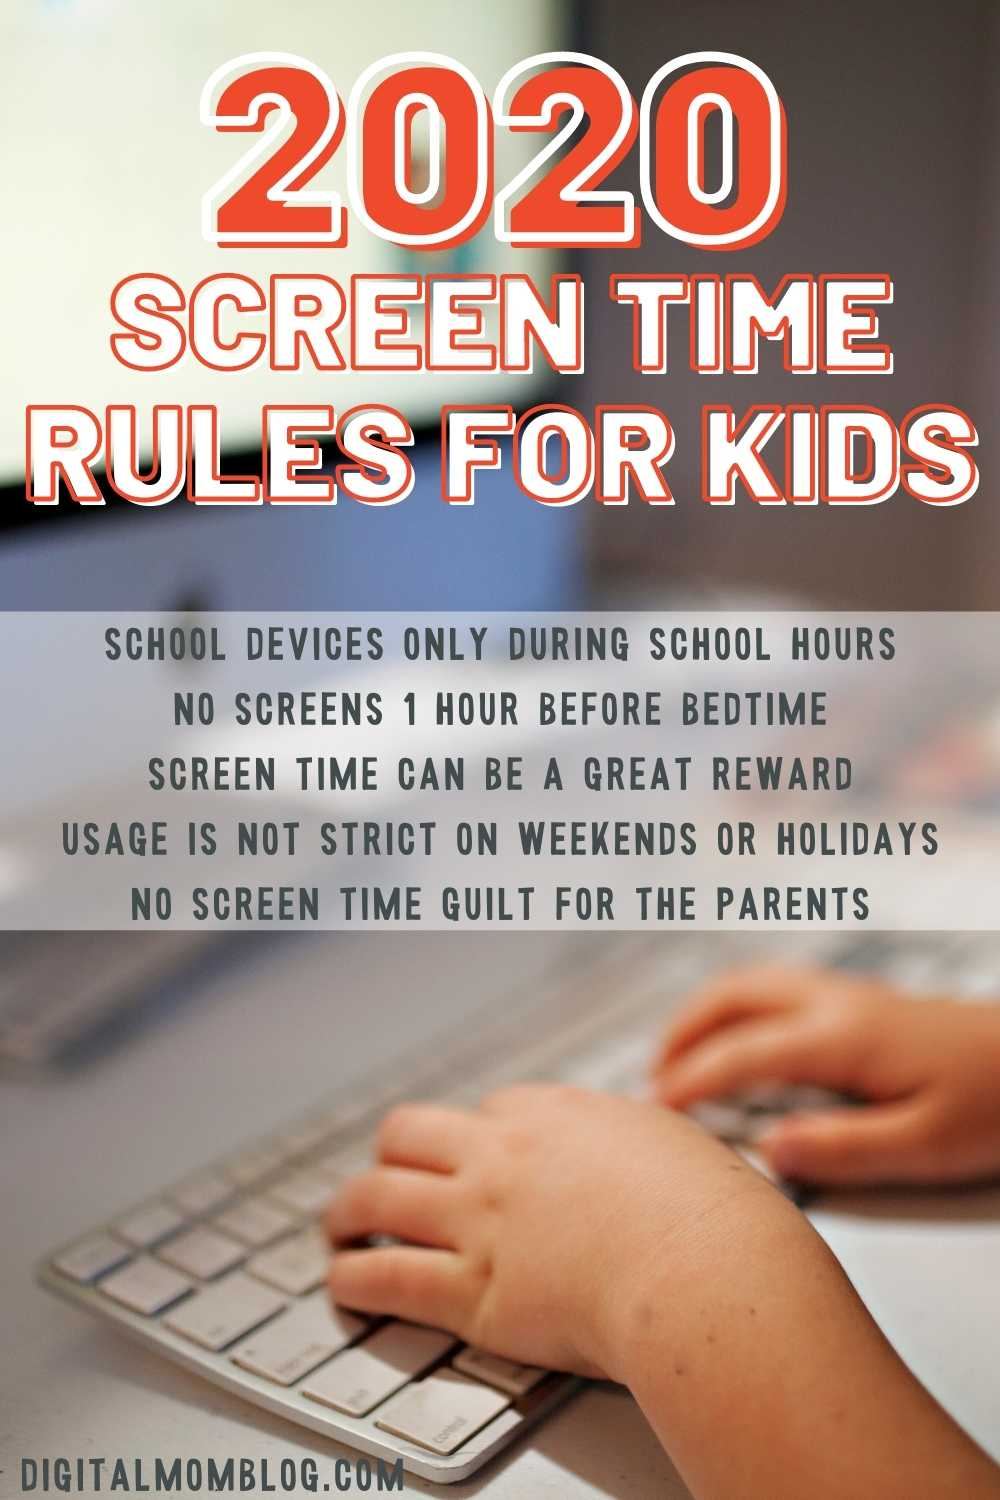 The Rules screen time rules for kids in 2020